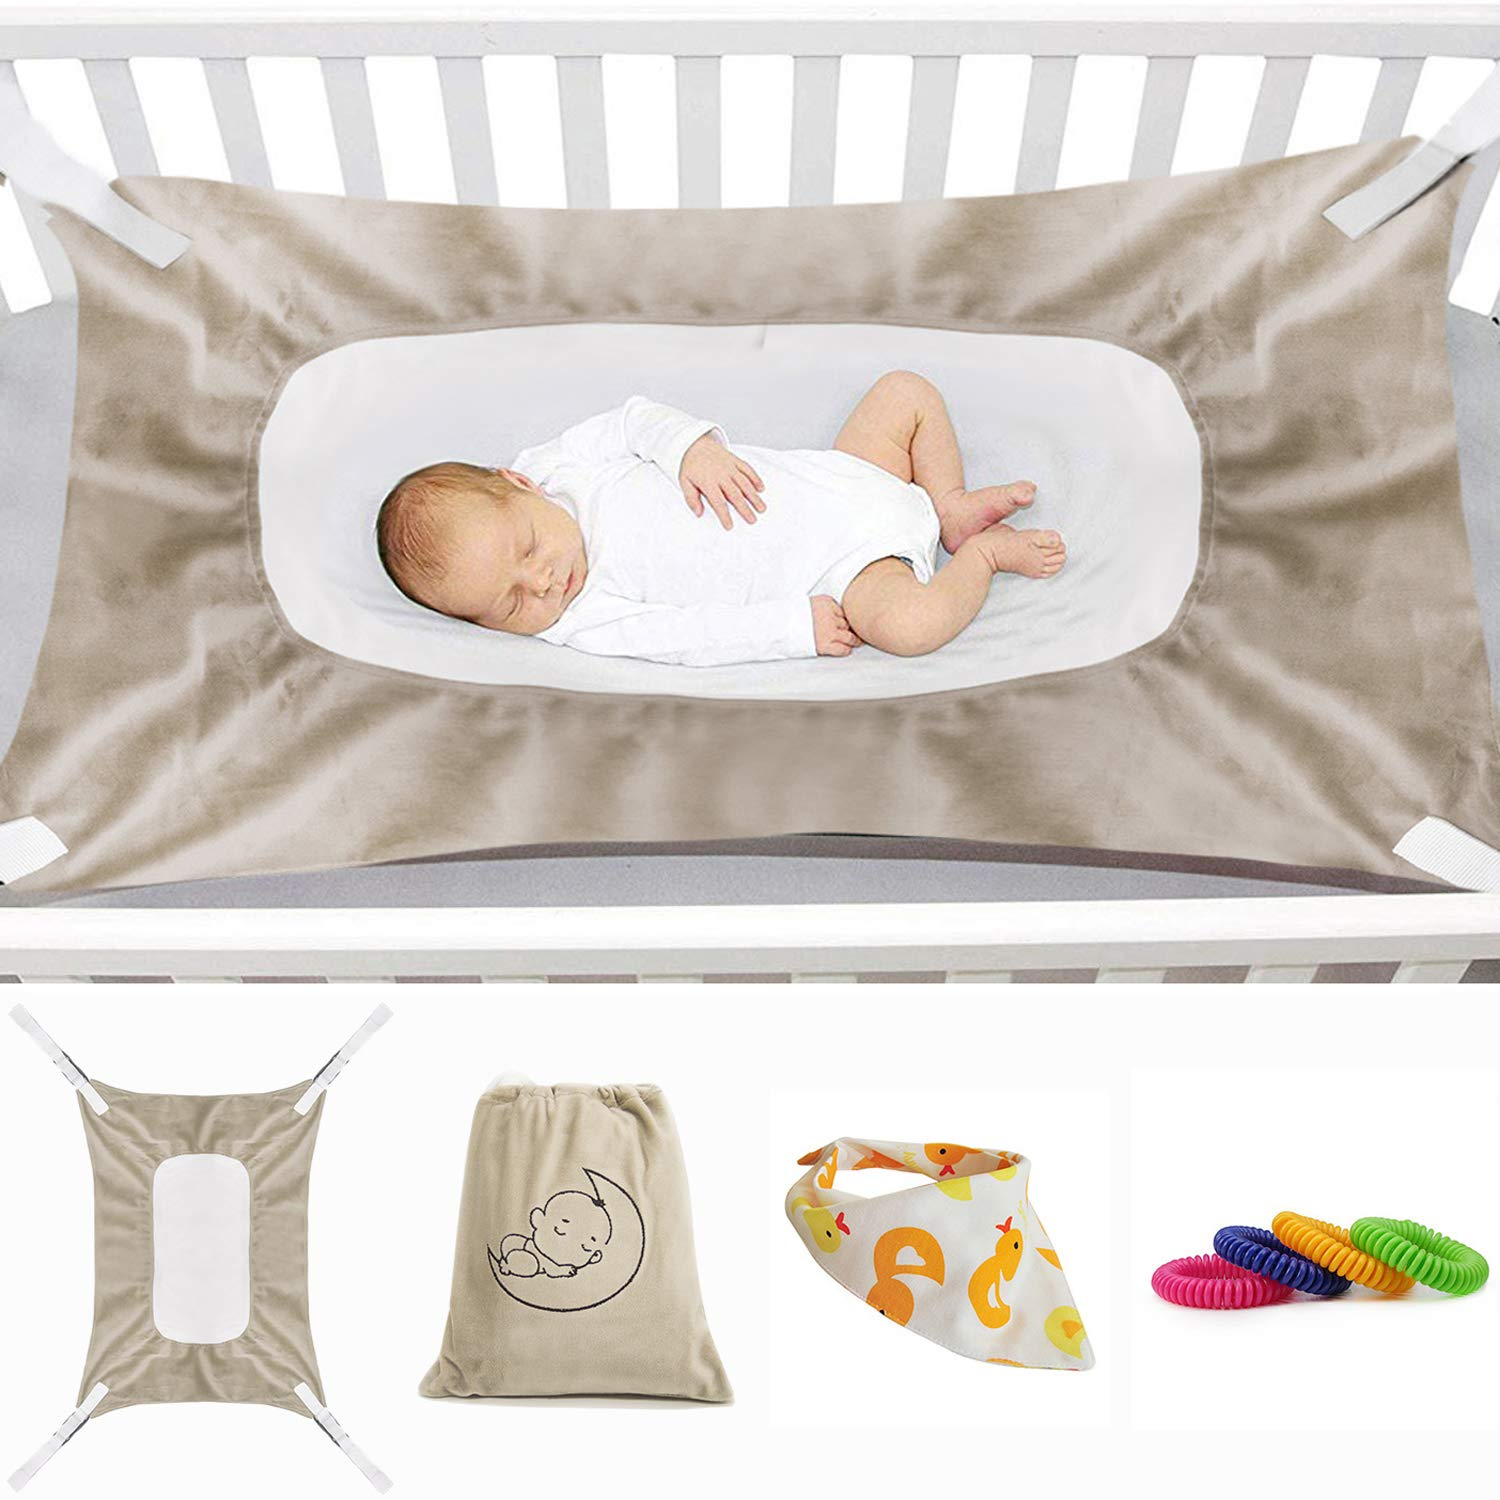 Baby Hammock for Crib New Upgrade, Mimics Womb Soft and Comfortable Material with Strong Adjustable Straps Newborn Hammock (Light Brown)